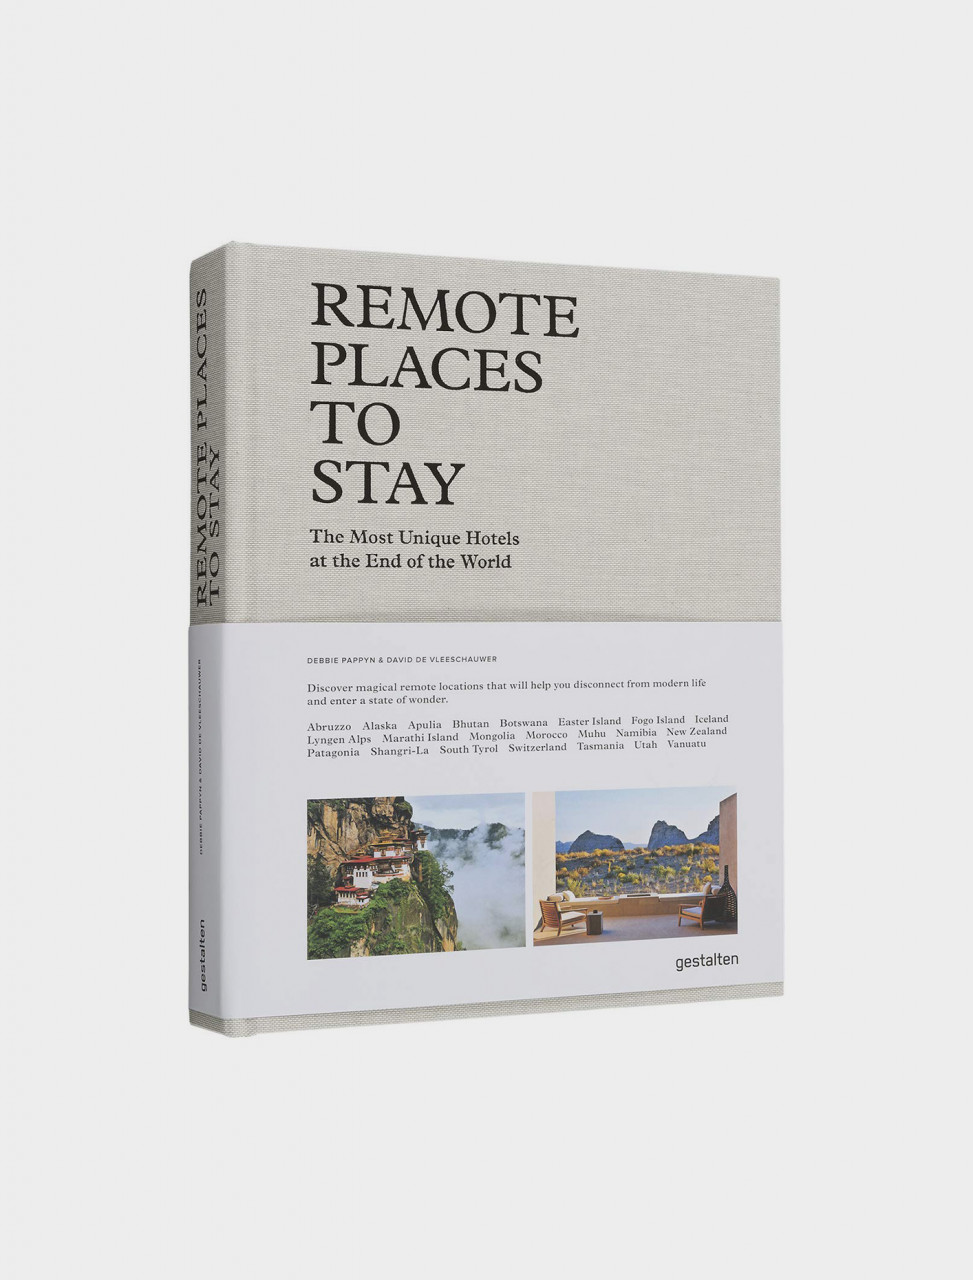 9783899559866 REMOTE PLACES TO STAY